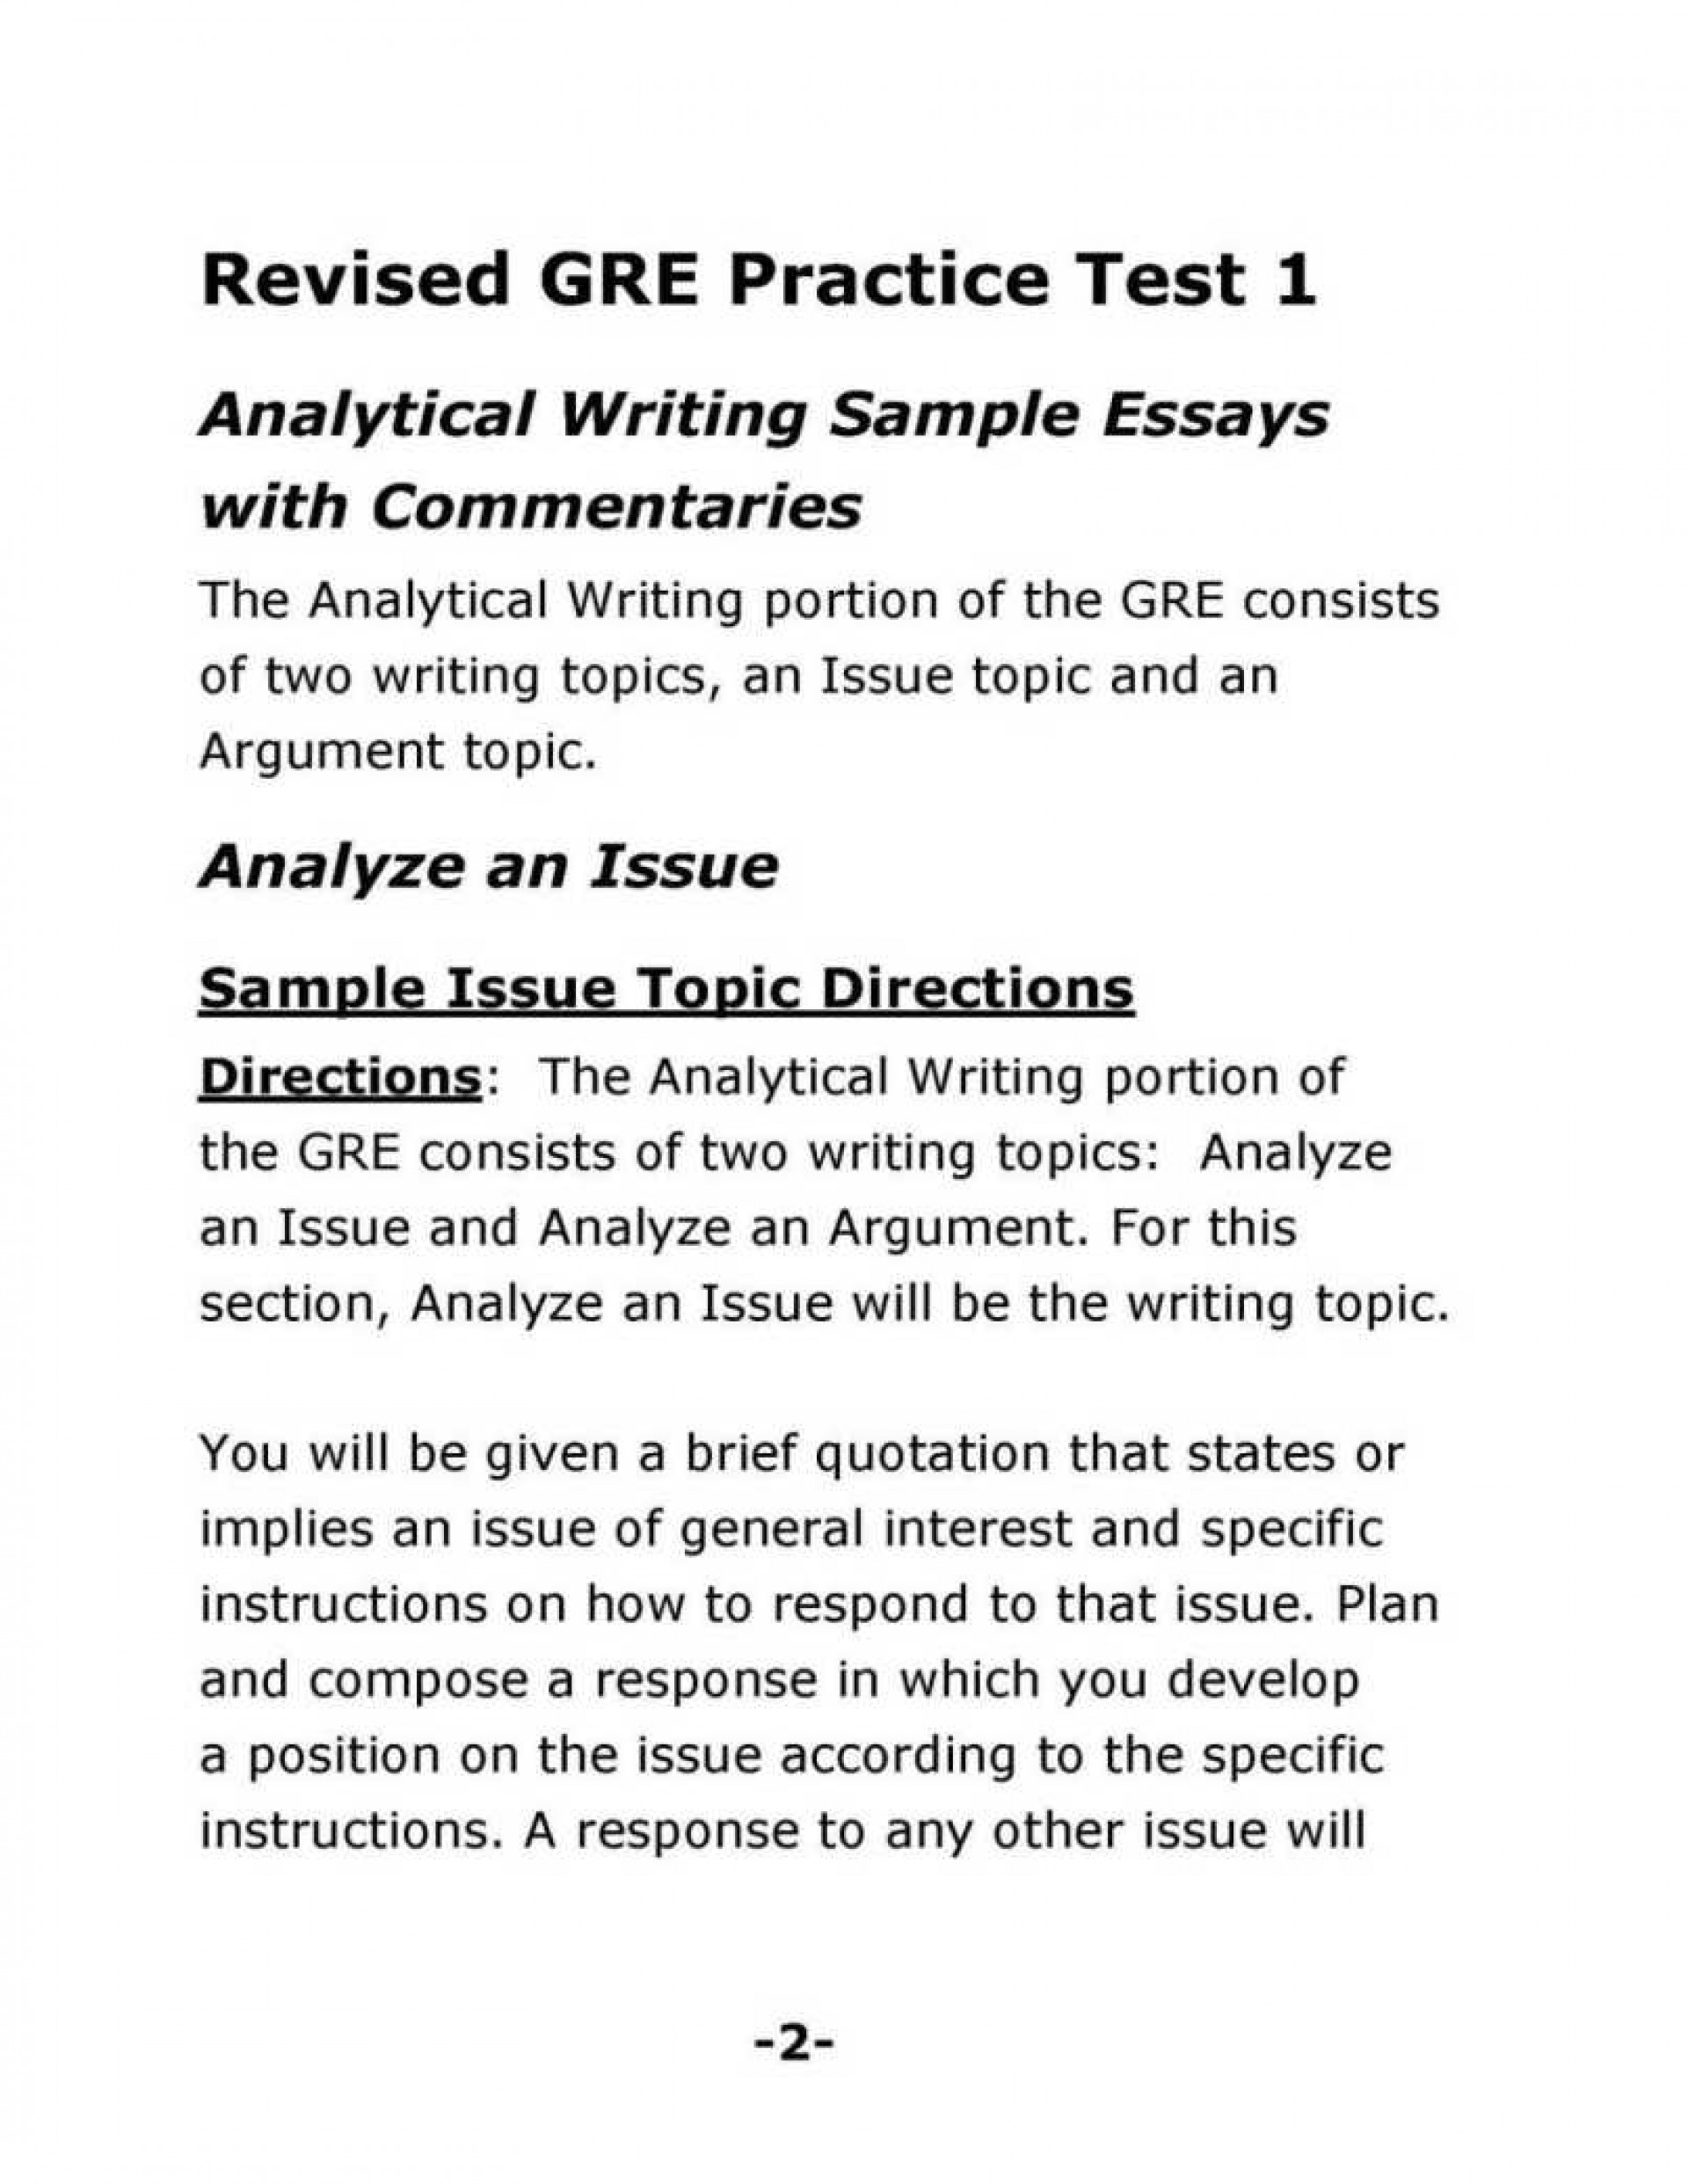 005 How To Write Gre Argument Essay Formatted Resume Example Template Sample Test Papers With Soluti Samples Length Rhesus Monkey Questions Score Pool Prompt Unusual Answers Solutions 1920